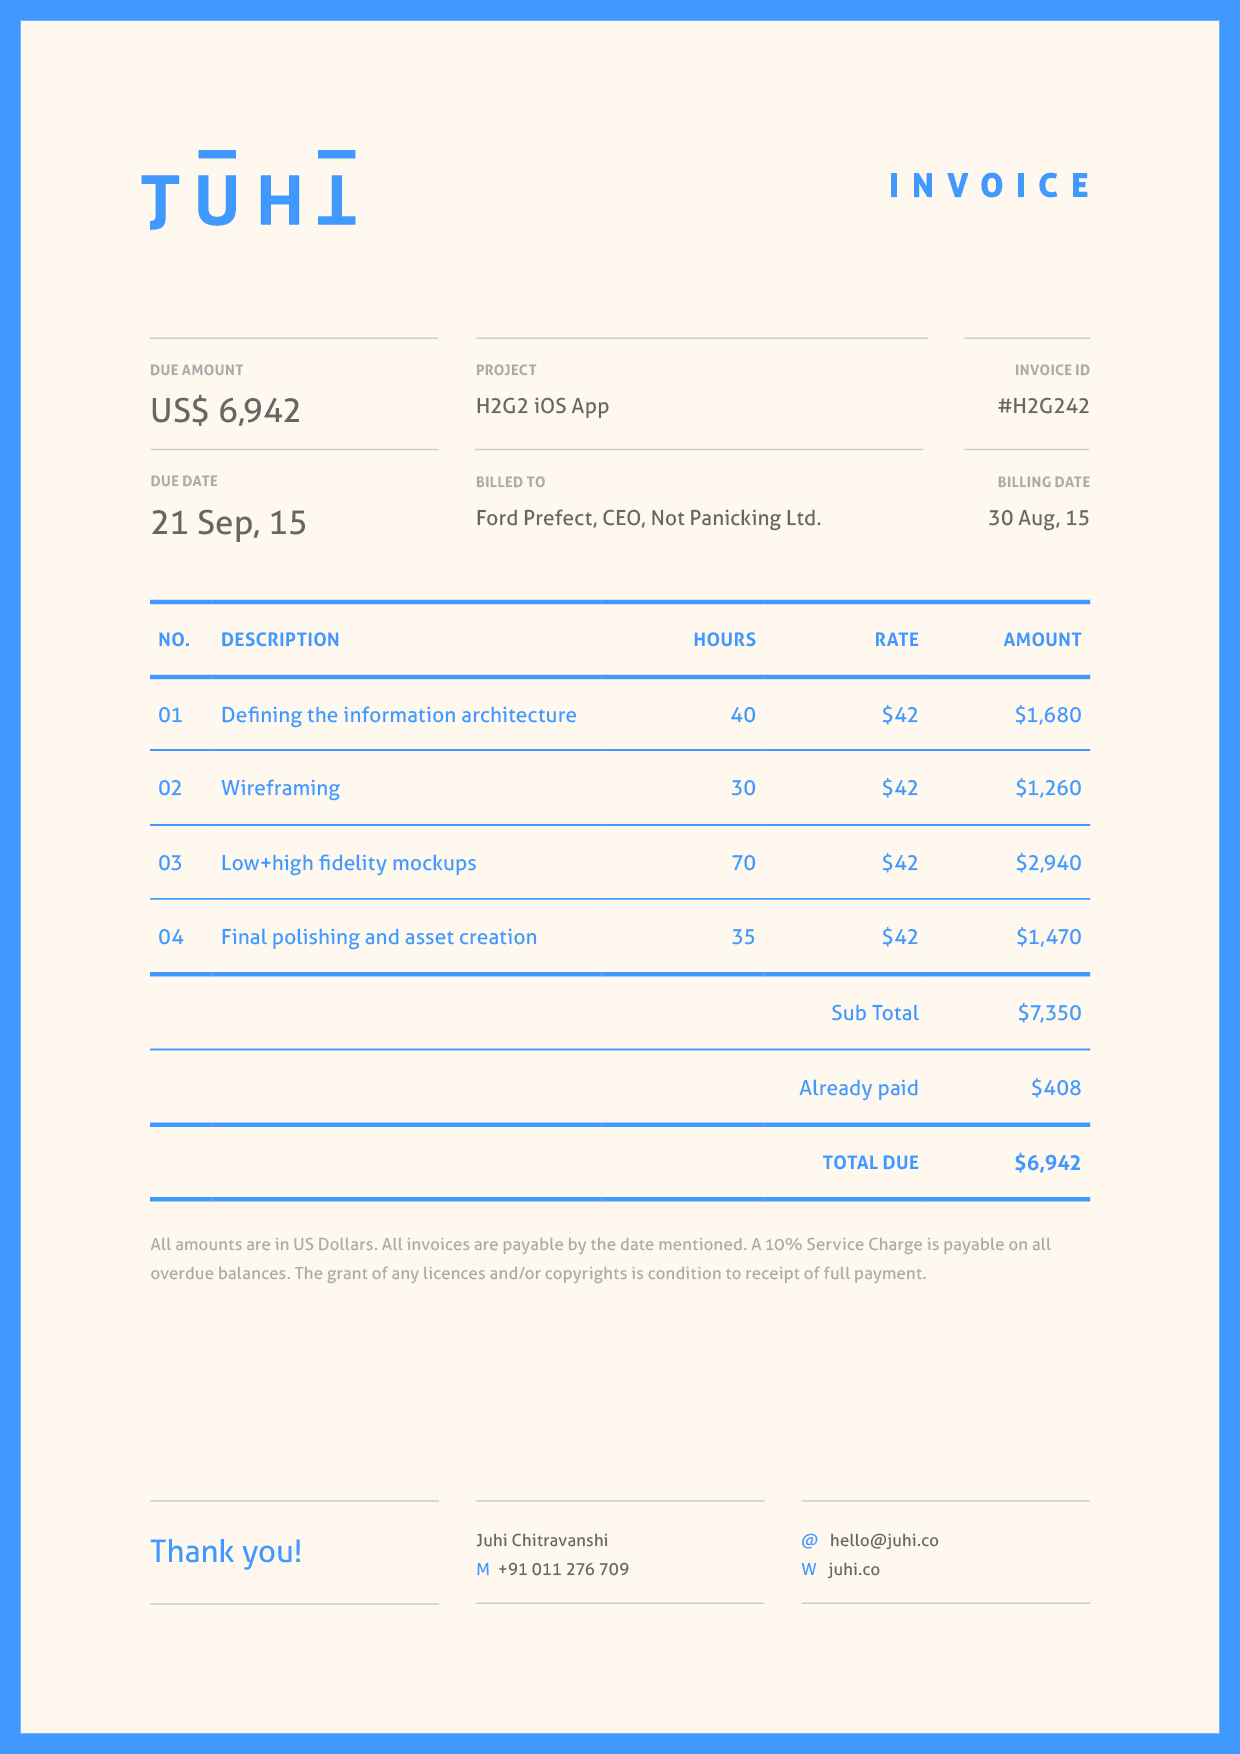 Usdgus  Fascinating Dont Hold Back On Your Invoice  Inspiring Designs  With Glamorous Invoice By Juhi Chitravanshi Follow With Delightful Sales Receipt Software Also Western Union Money Transfer Receipt Sample In Addition Biscuits Receipts And Dumpling Receipt As Well As Format Of Money Receipt Additionally Money Receipt Format Doc From Inspirationfeedcom With Usdgus  Glamorous Dont Hold Back On Your Invoice  Inspiring Designs  With Delightful Invoice By Juhi Chitravanshi Follow And Fascinating Sales Receipt Software Also Western Union Money Transfer Receipt Sample In Addition Biscuits Receipts From Inspirationfeedcom